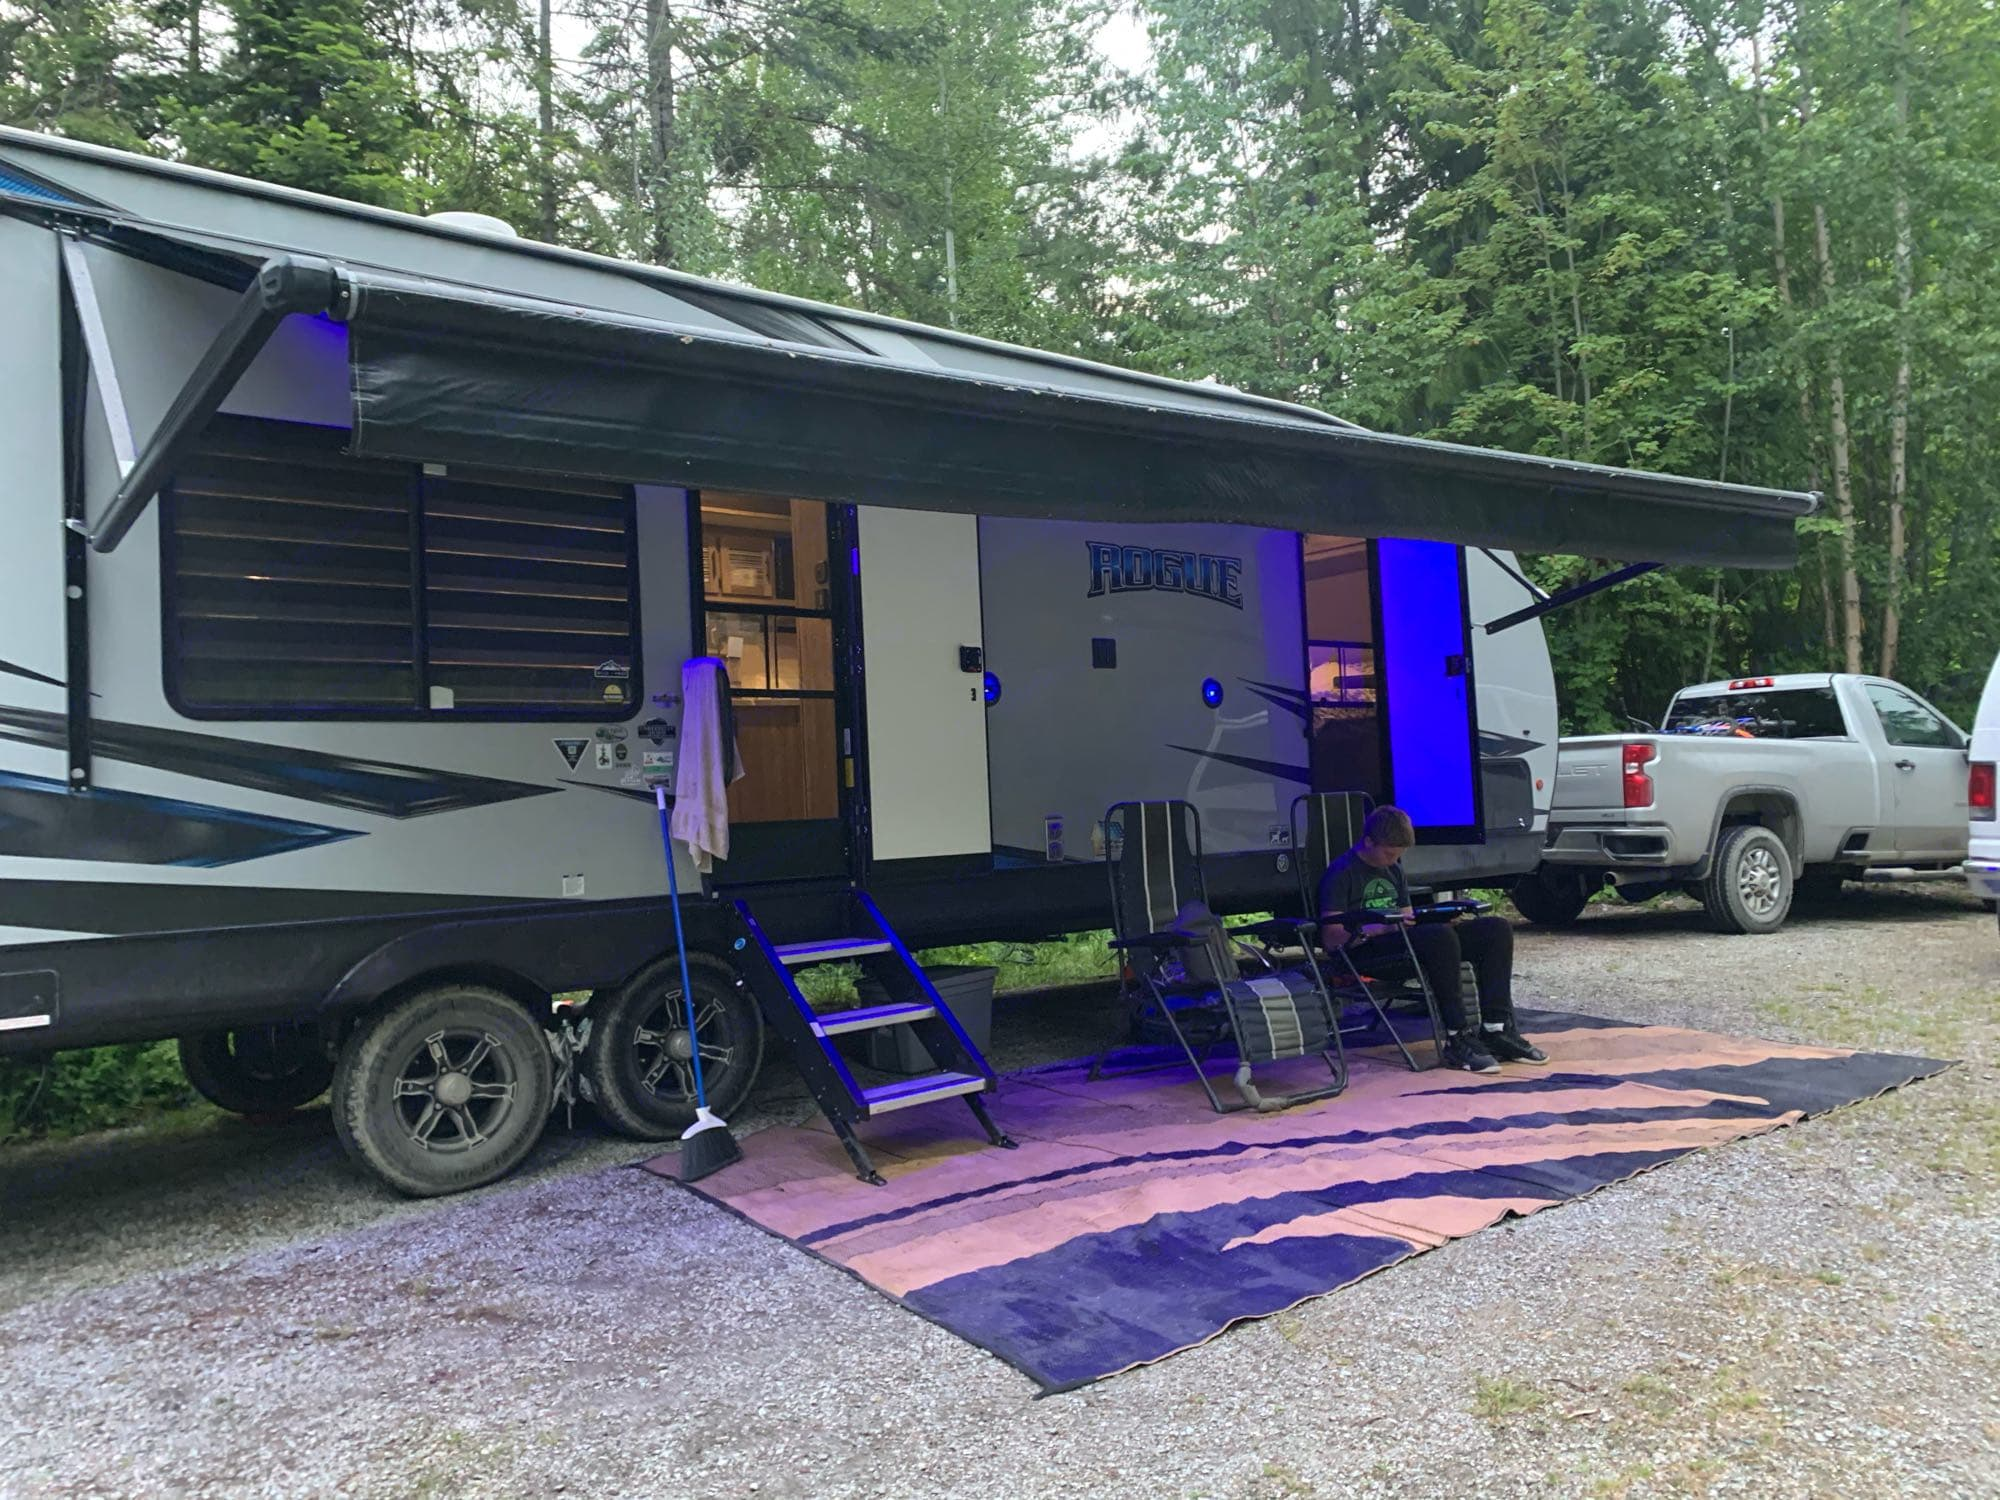 Wide awning for shade or rain. Forest River Raptor 2020